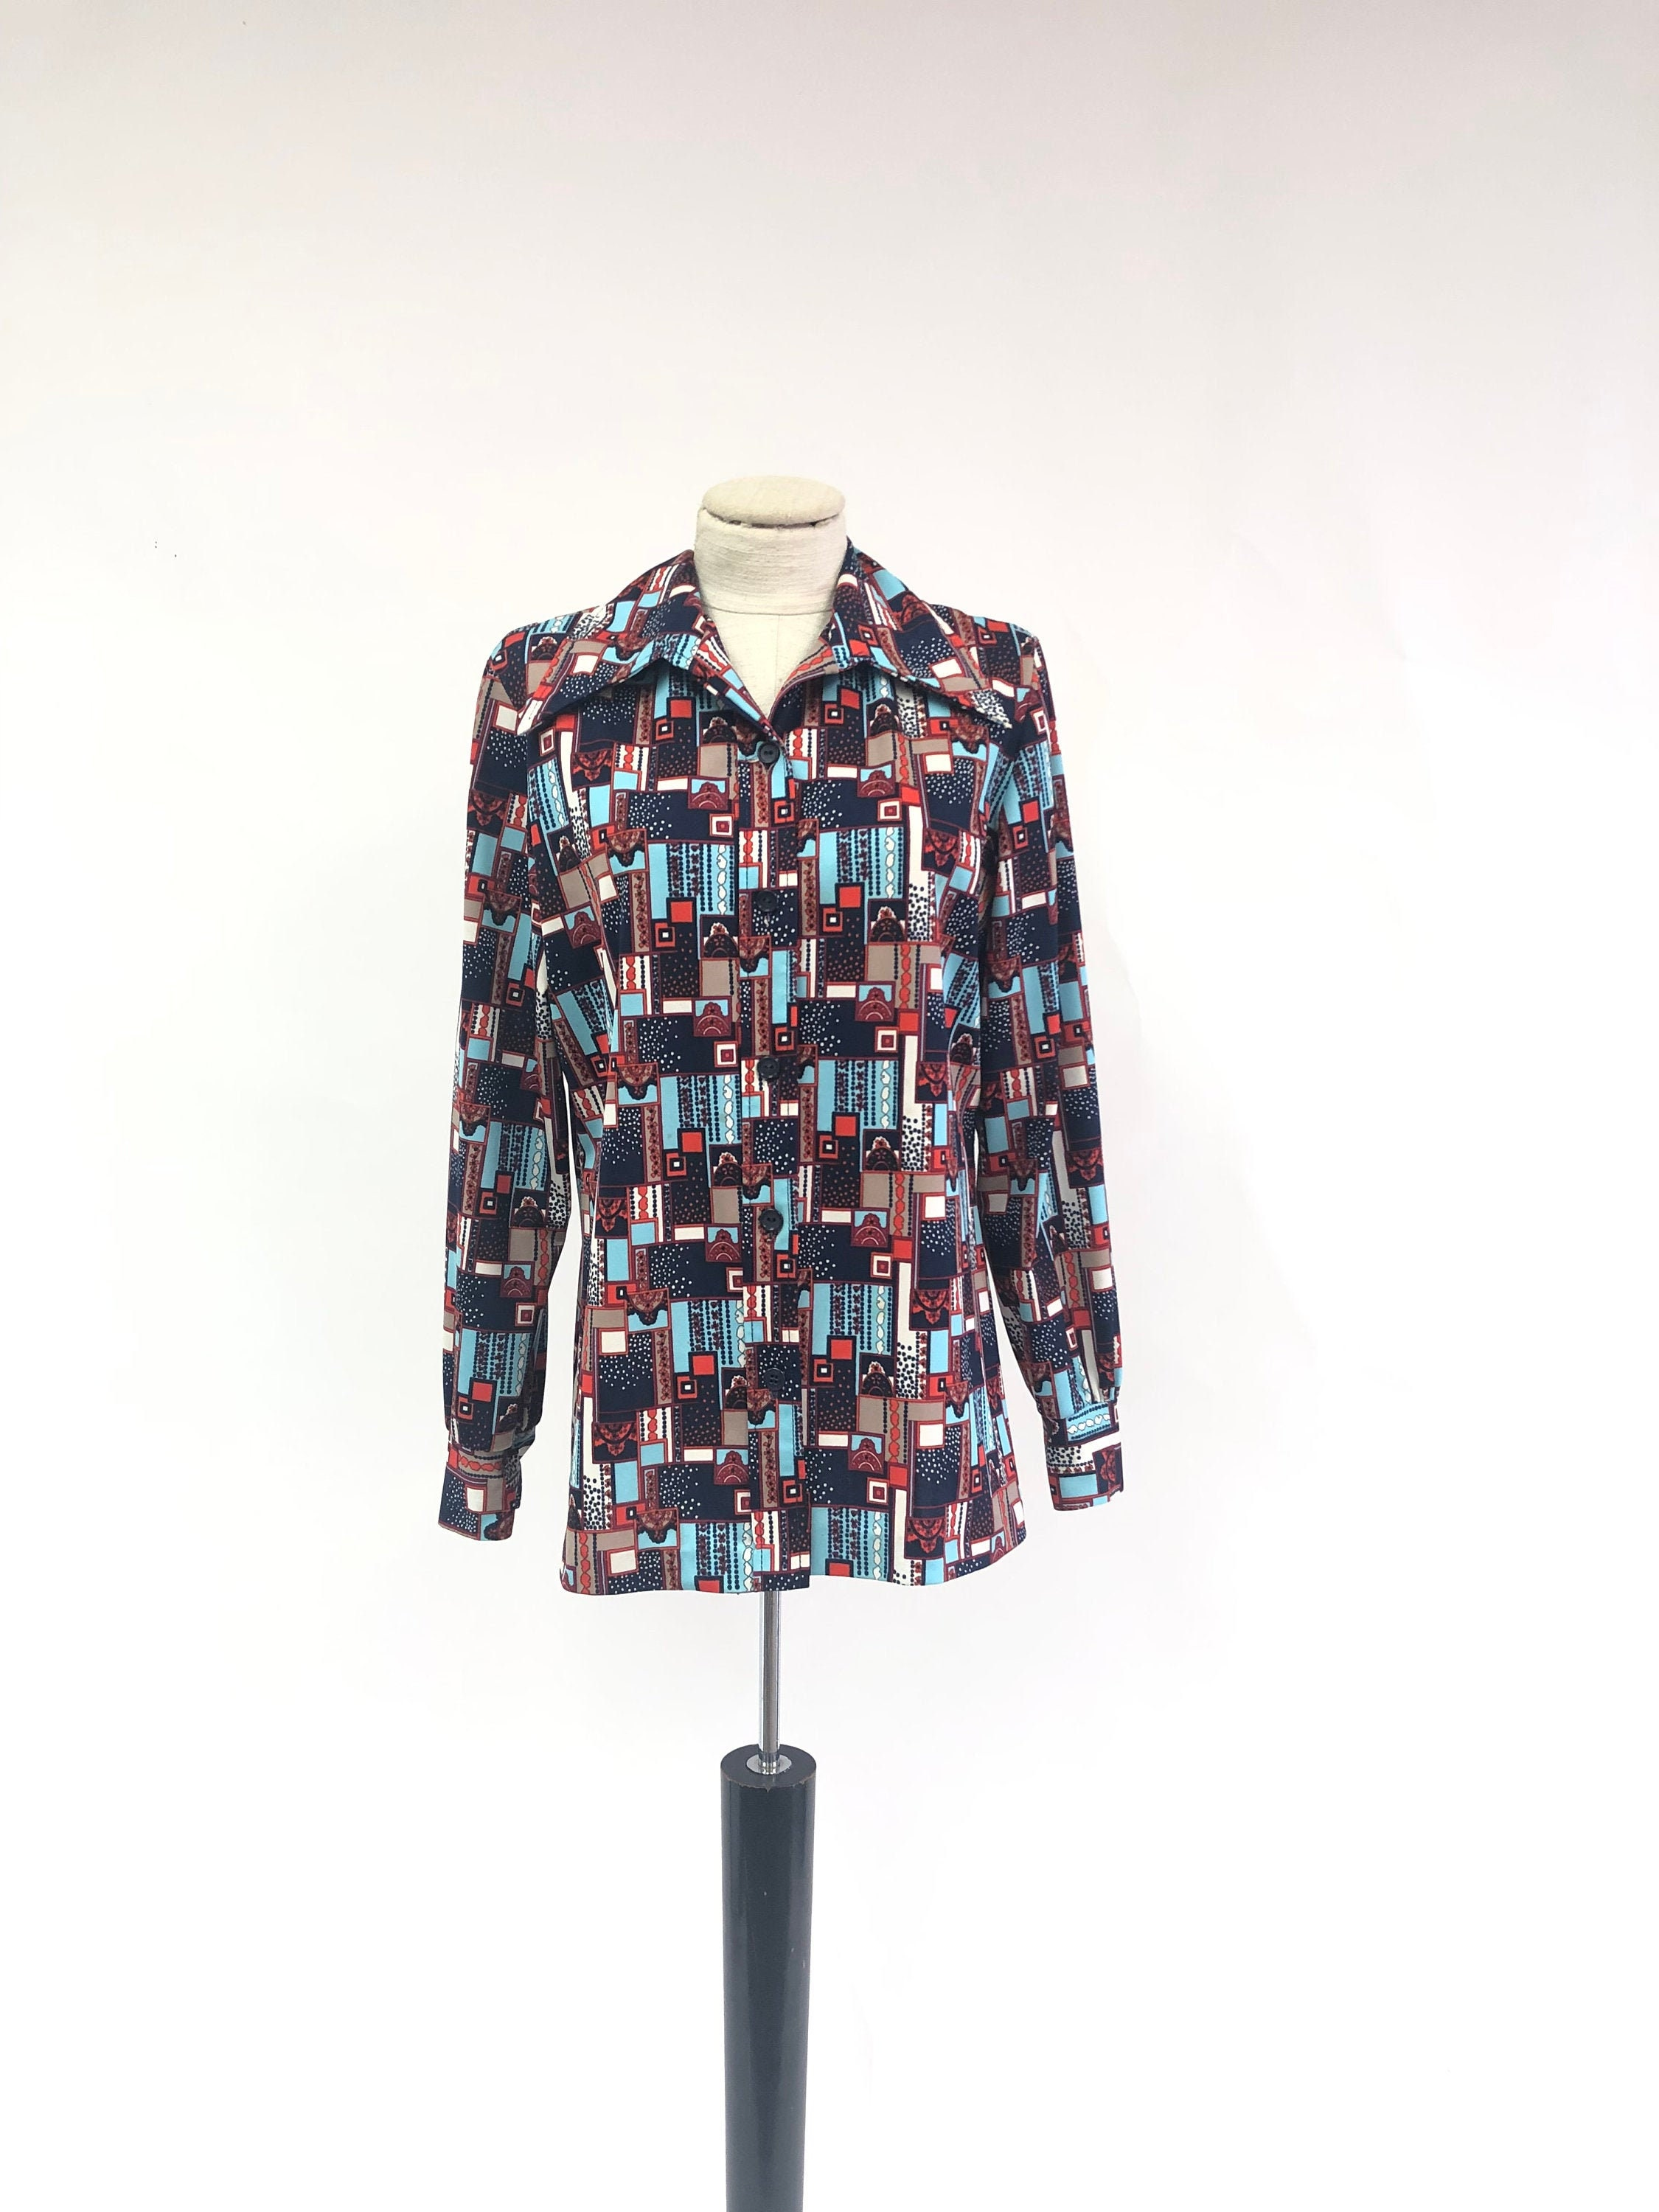 1970s Mens Shirt Styles – Vintage 70s Shirts for Guys Mens Vintage 1970s Polyester Shirt $0.00 AT vintagedancer.com